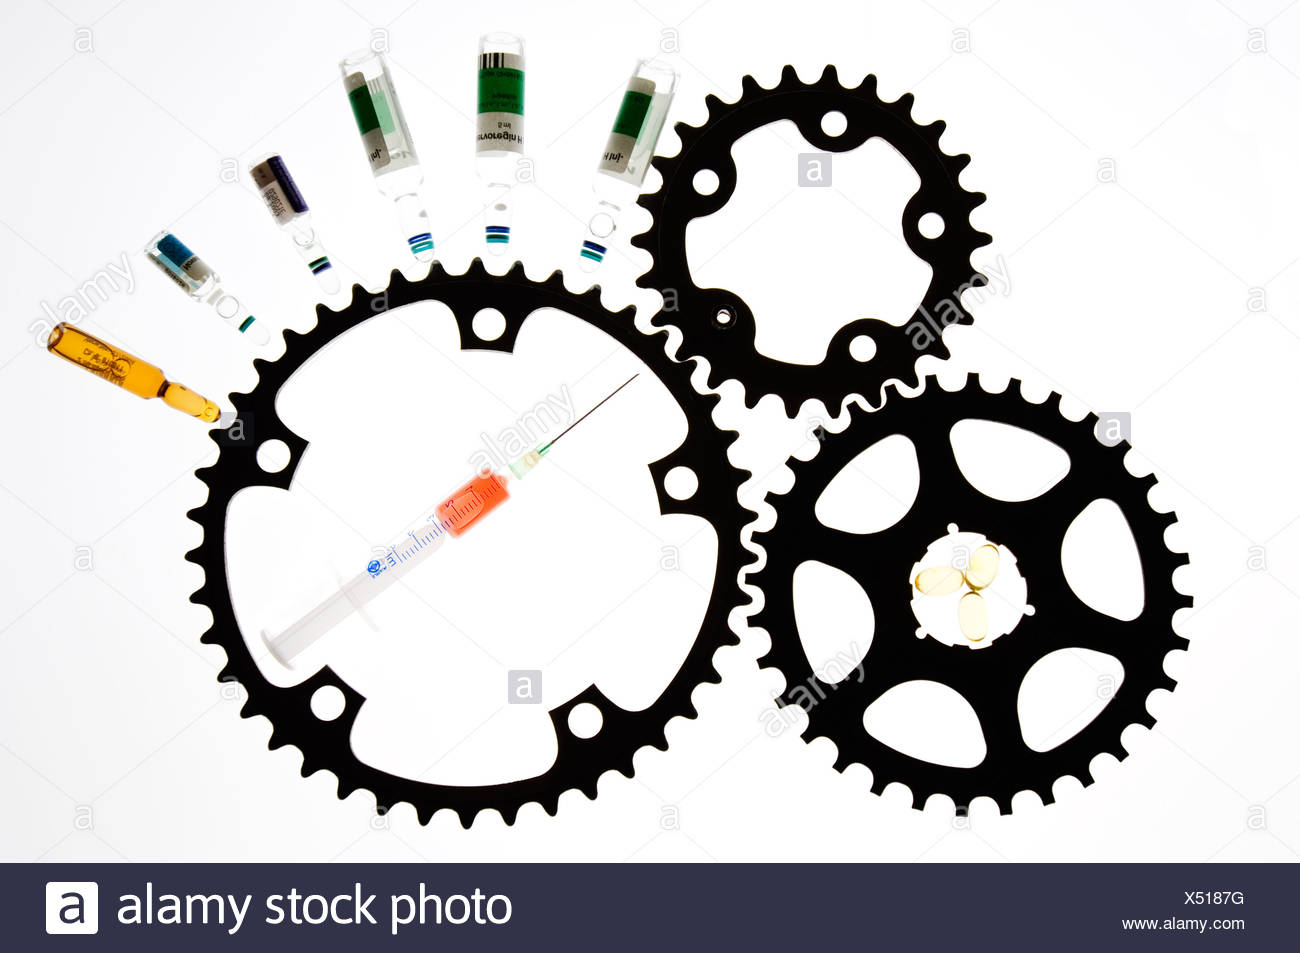 Gear wheels and medicines symbolize medicine abuse (doping) in the cycling. - Stock Image